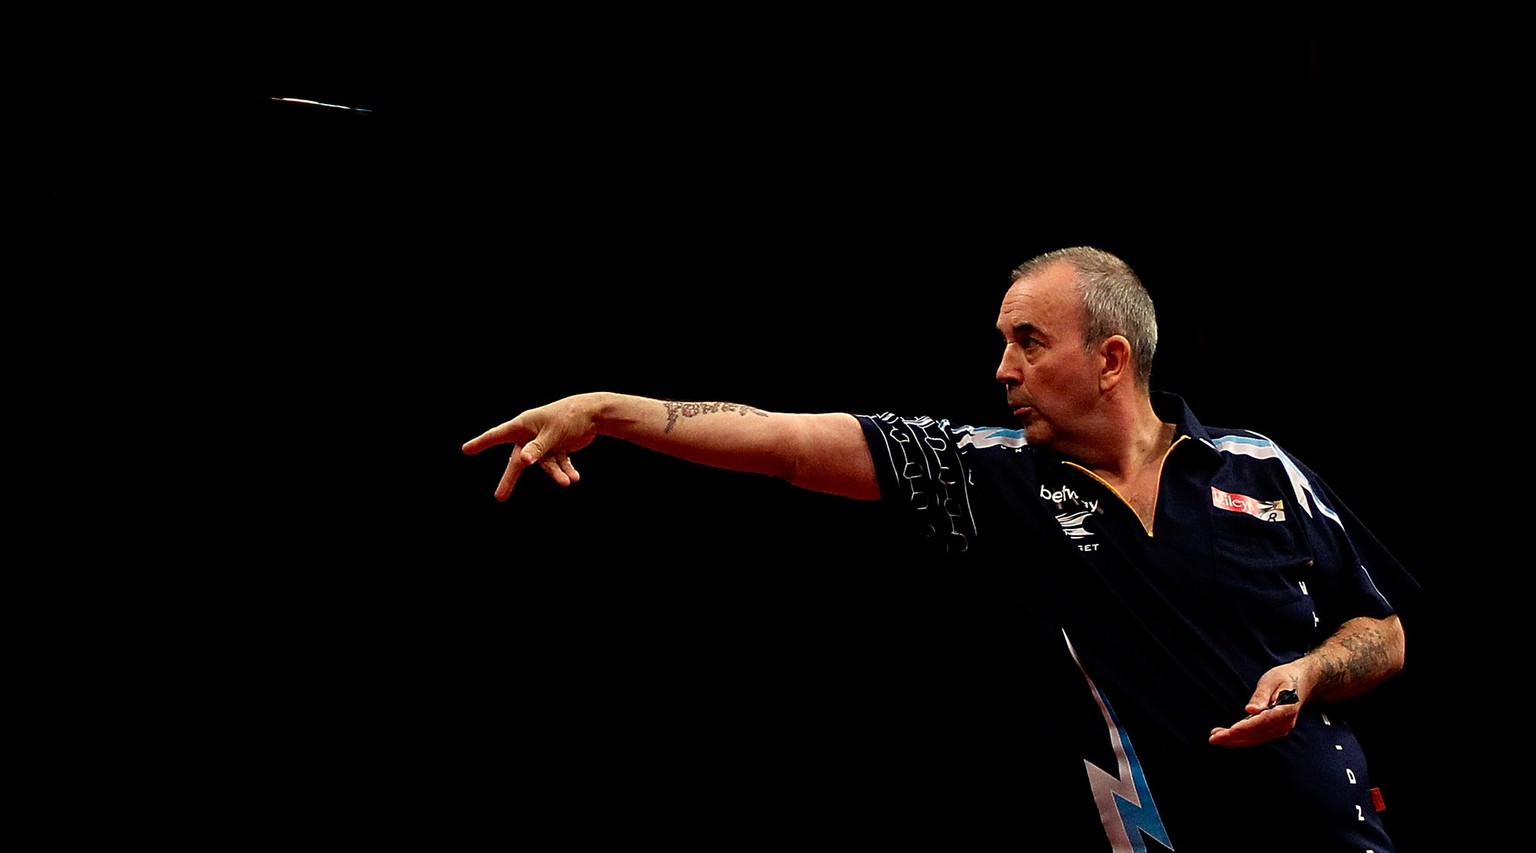 LONDON, ENGLAND - MAY 22:  Phil Taylor of England in action during the McCoys Premier League Darts Play-Offs Semi Final match between Raymond van Barneveld and Phil Taylor at O2 Arena on May 22, 2014 in London, England.  (Photo by Ben Hoskins/Getty Images)